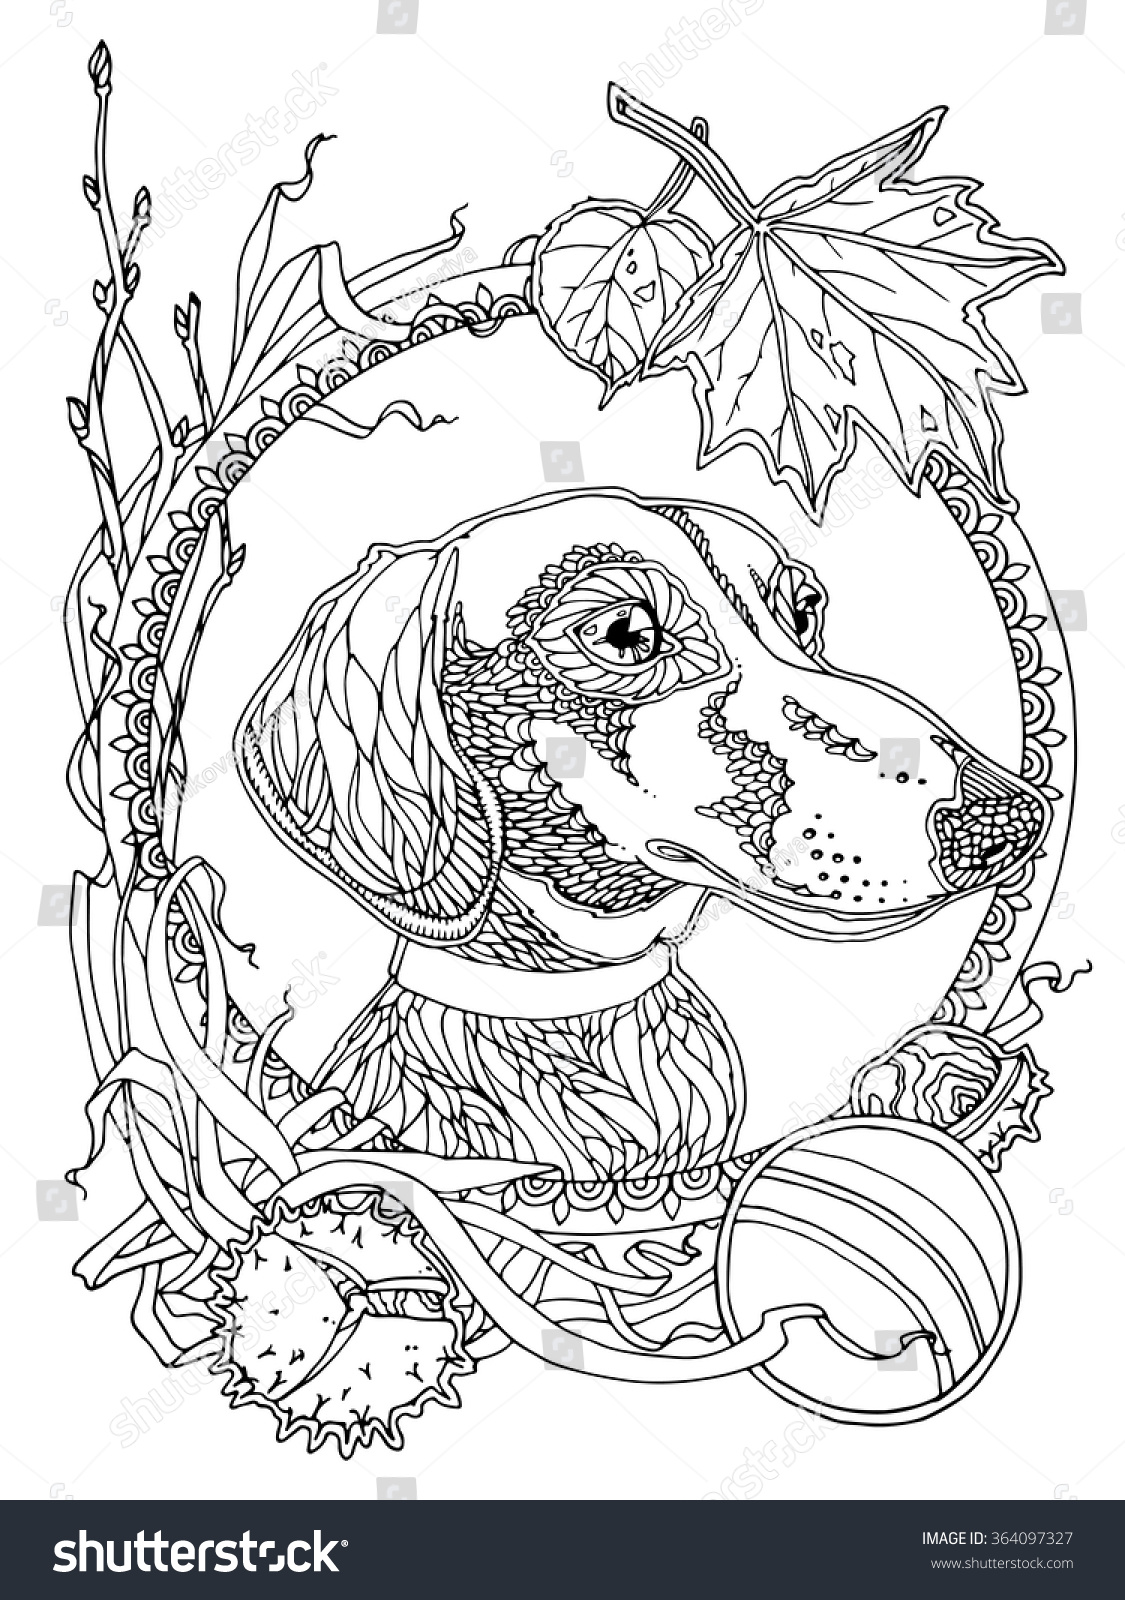 dachshund with autumn elements coloring page for adults